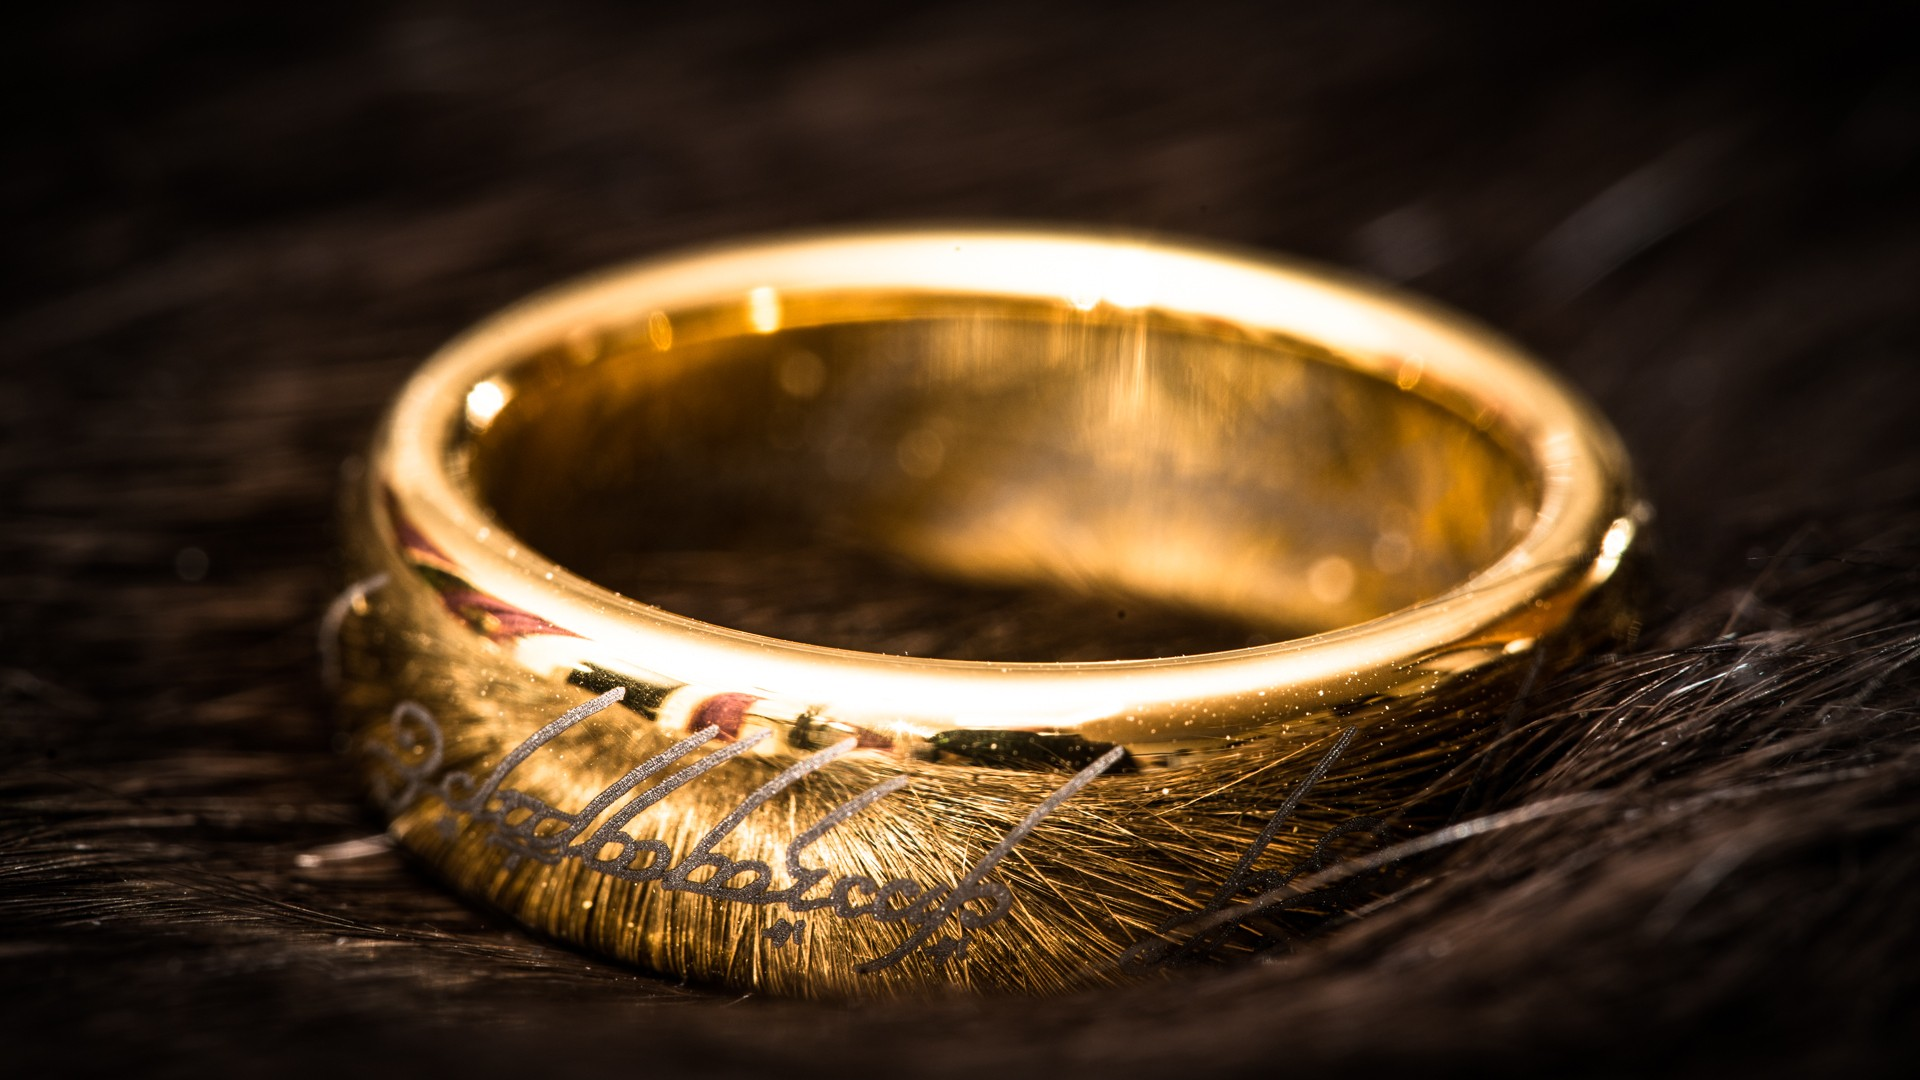 What Is On The One Ring